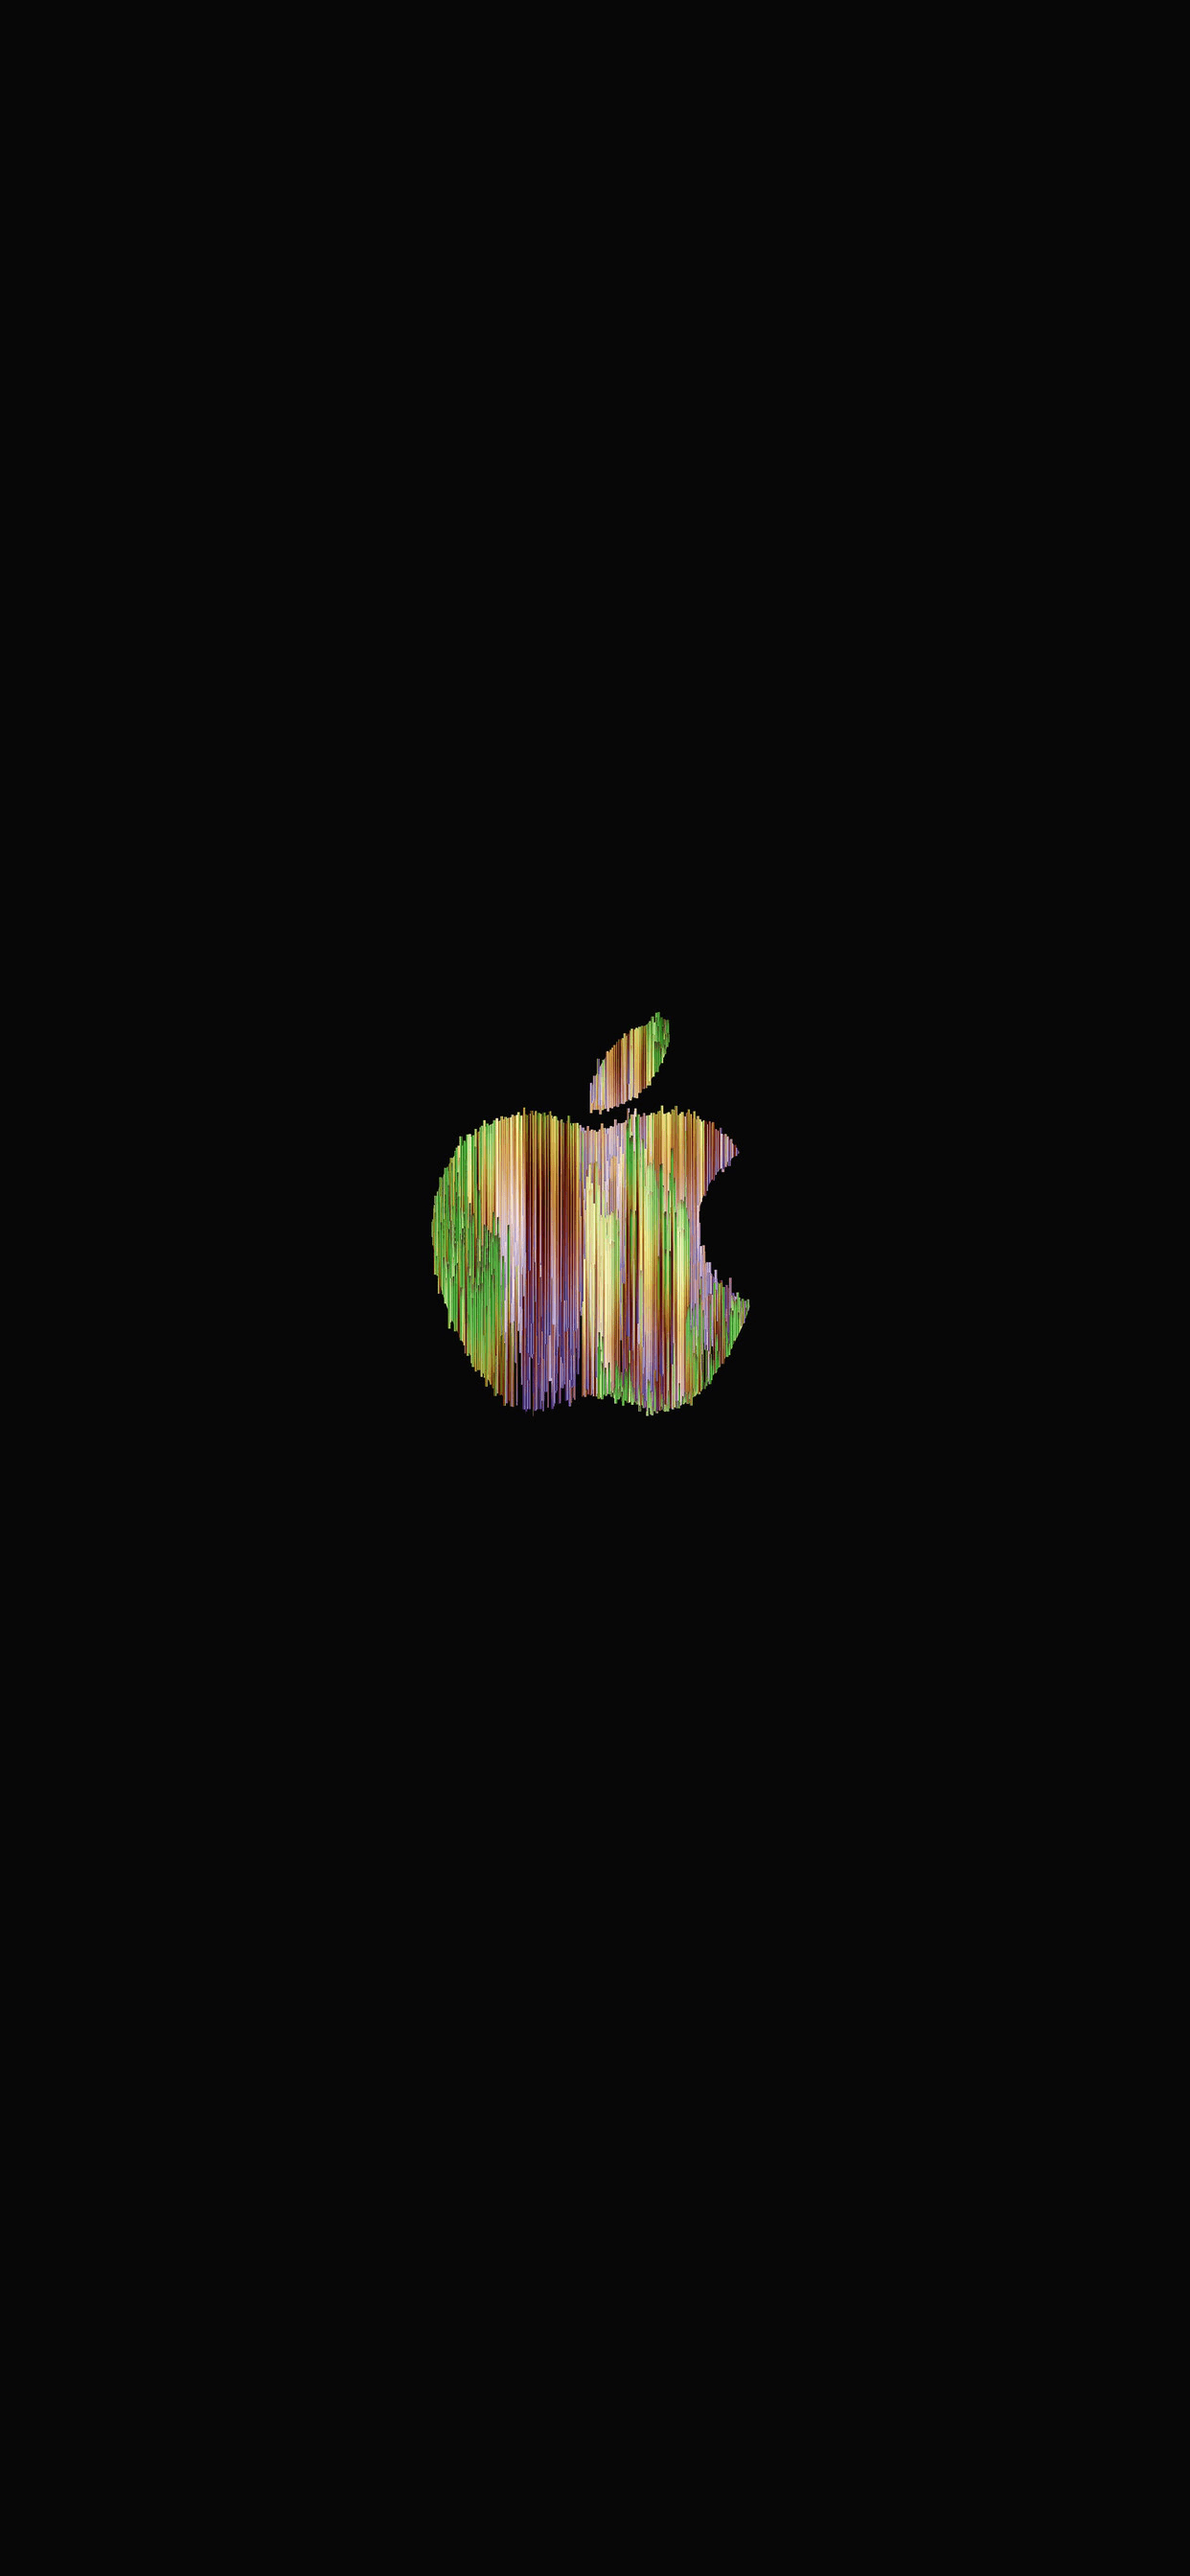 iPhone wallpaper apple logo 25 Apple logo